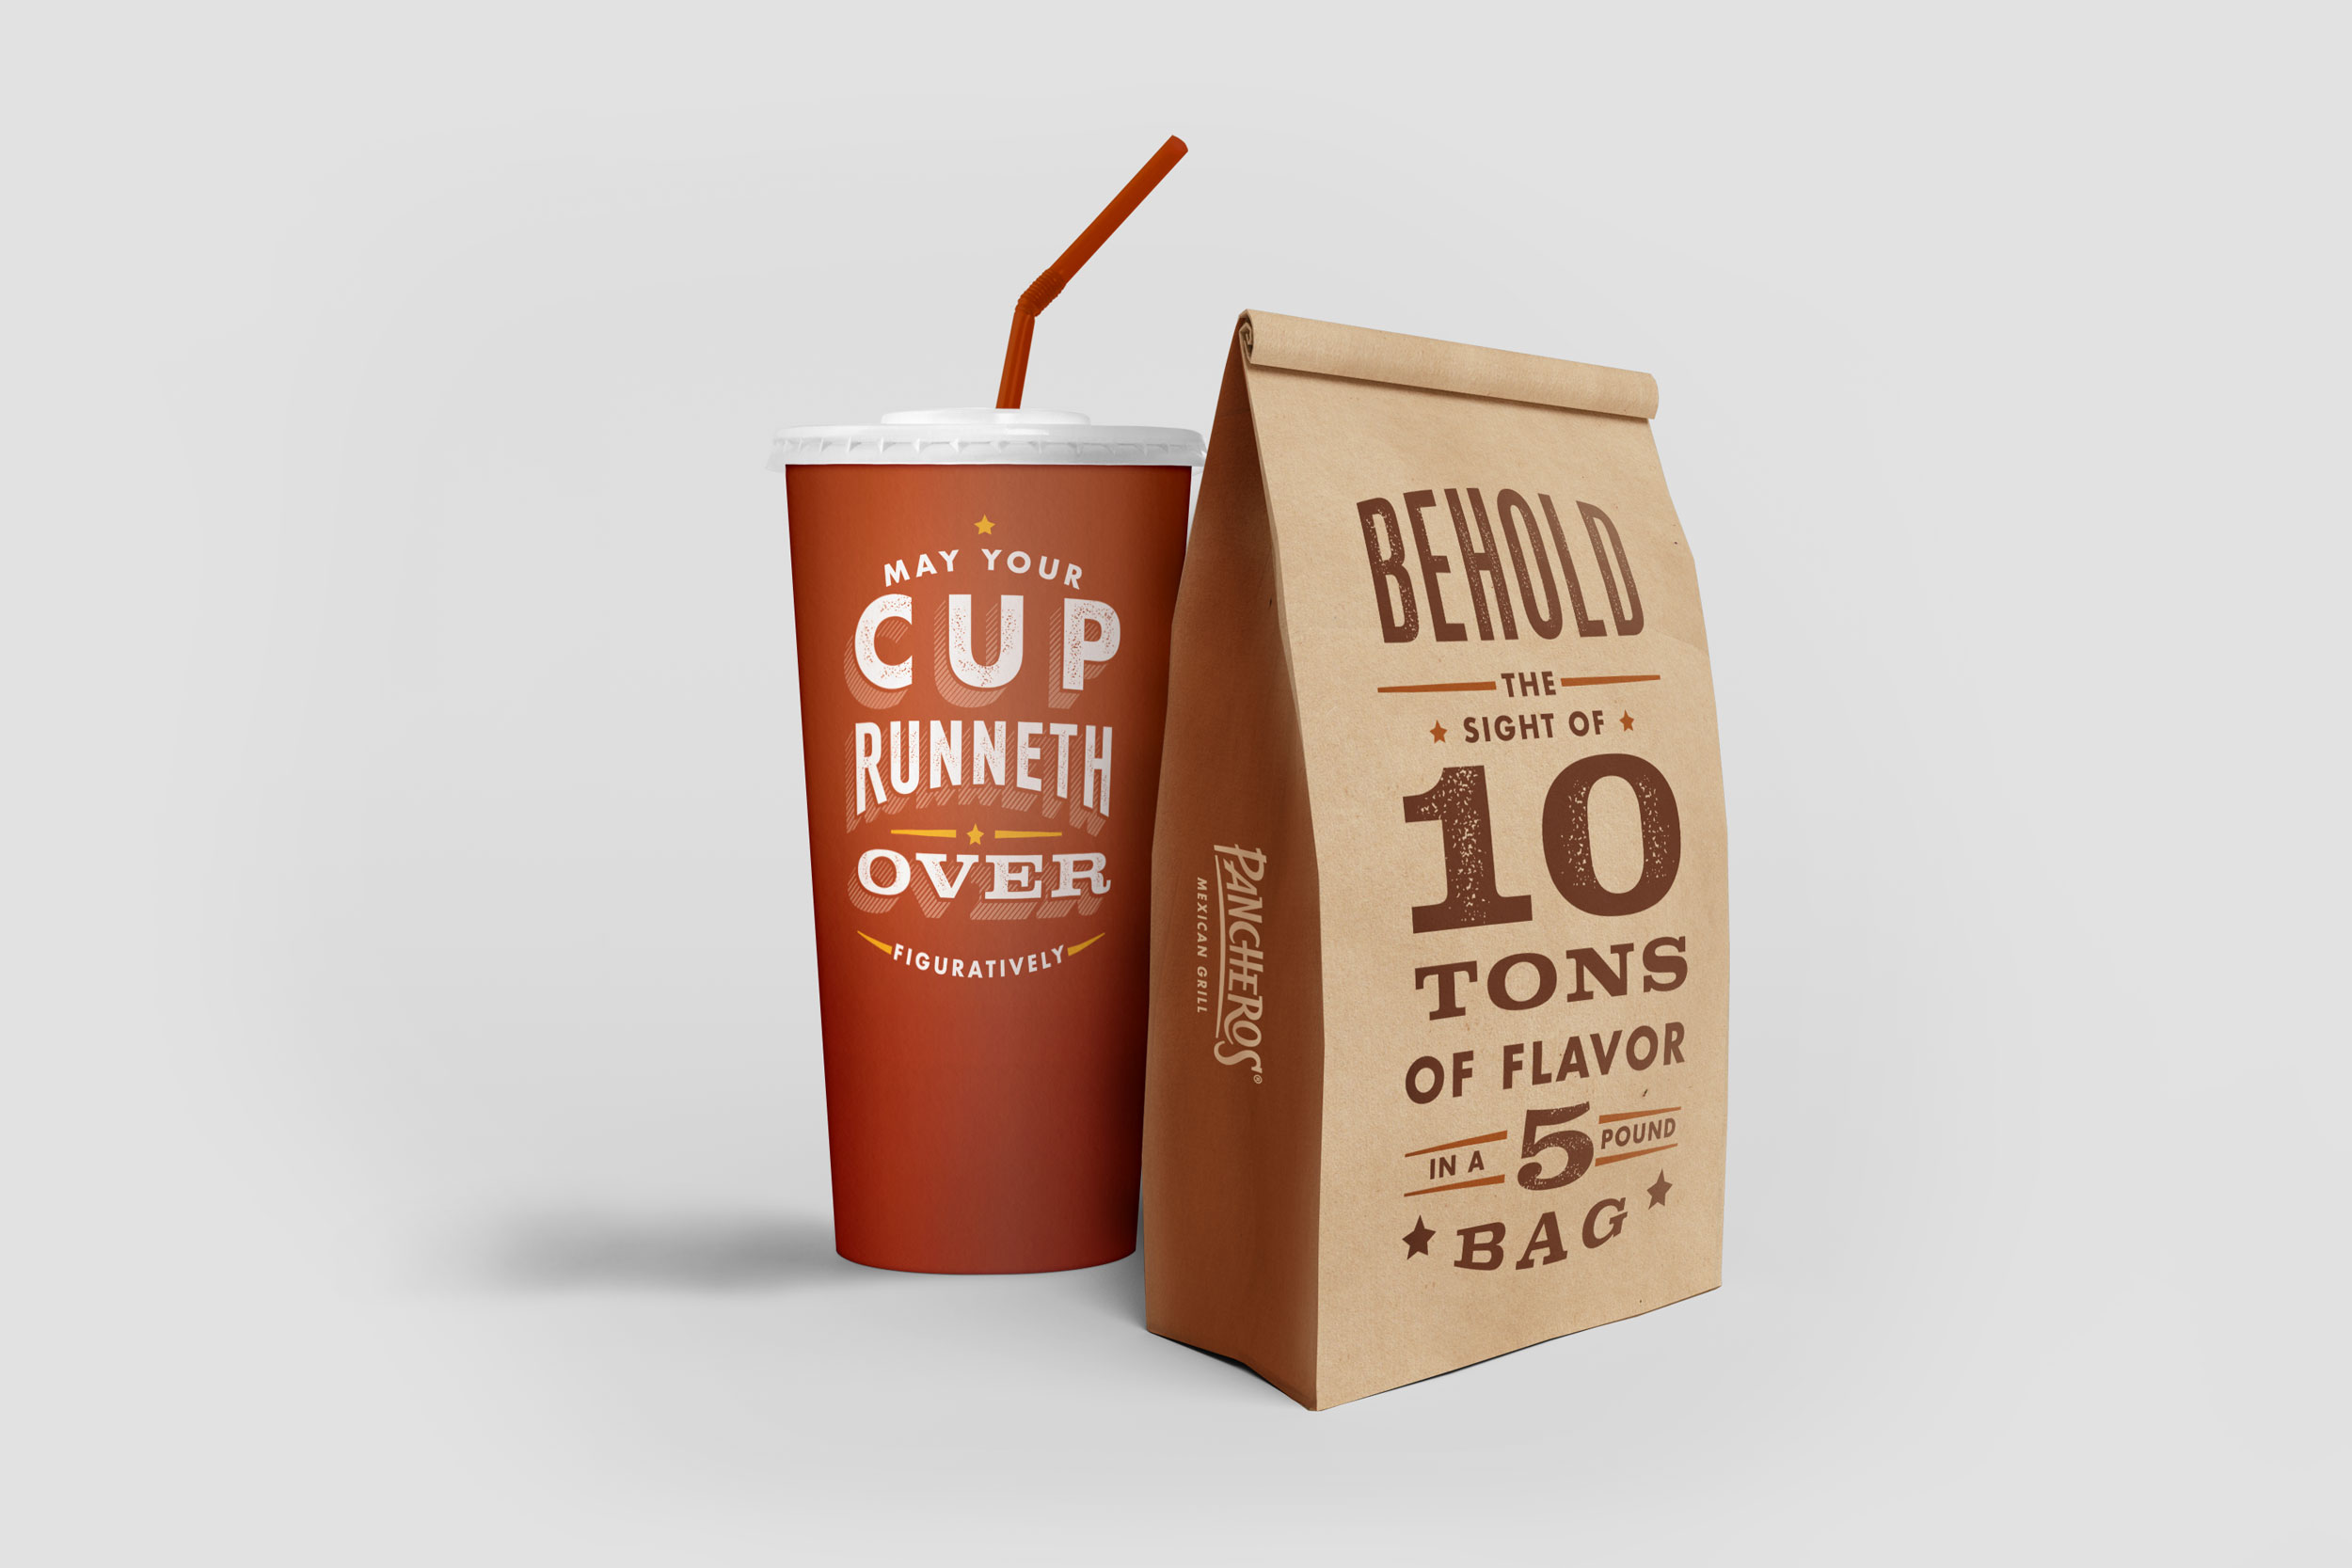 bag-and-cup_3.jpg